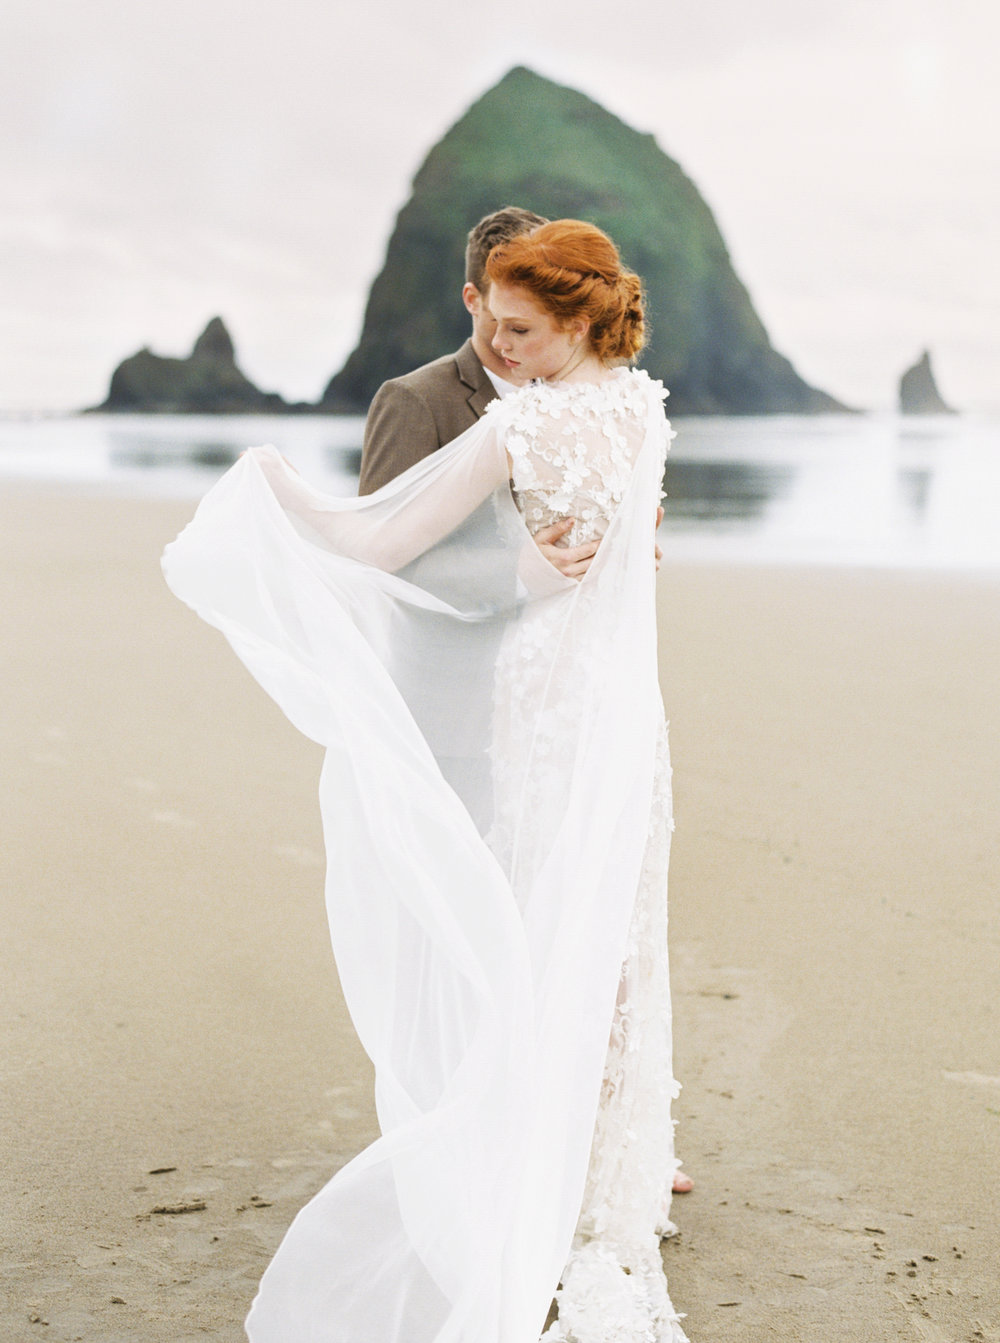 017@outlivecreative_cannon_beach_destination_wedding_photographer_&_videographer.jpg